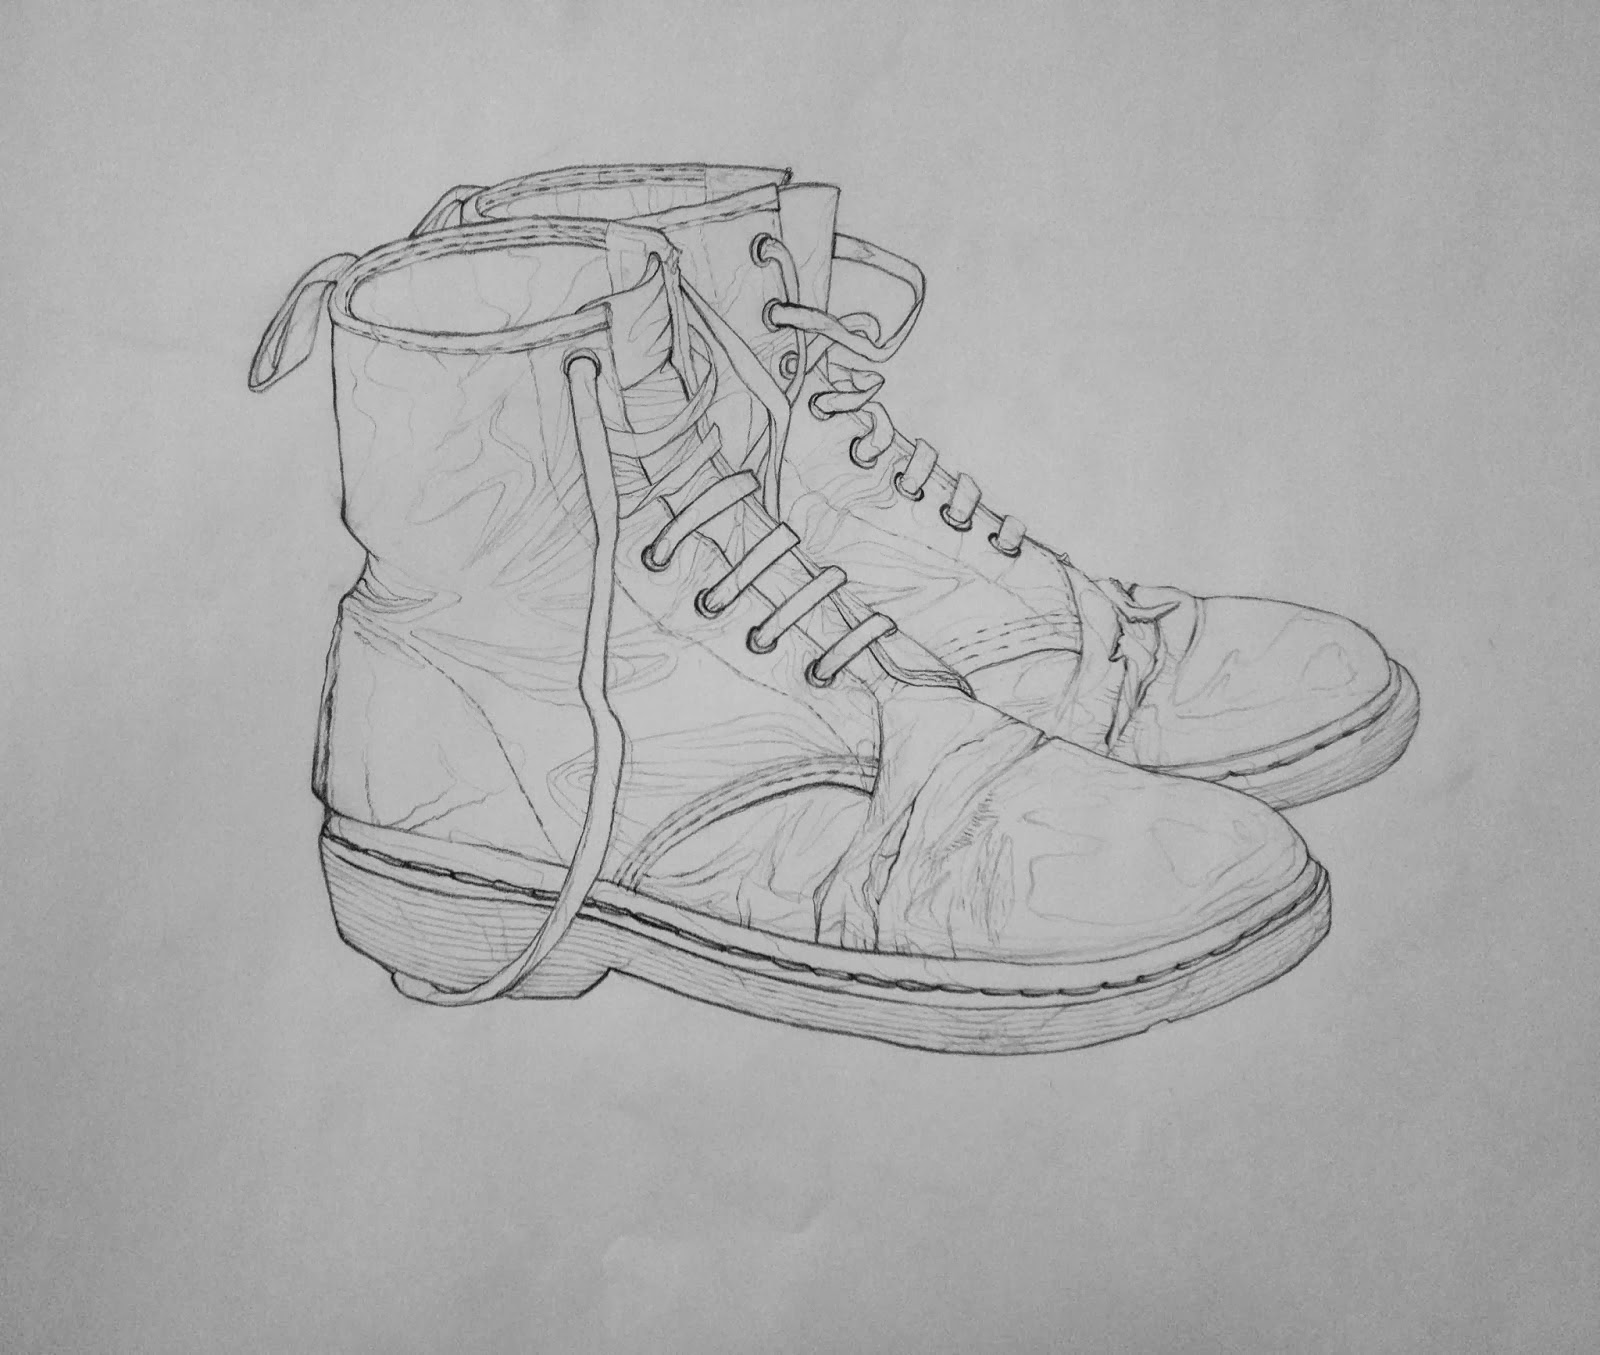 Contour Line Drawing Of Shoes : Foundations drawing spring homework shoe contour